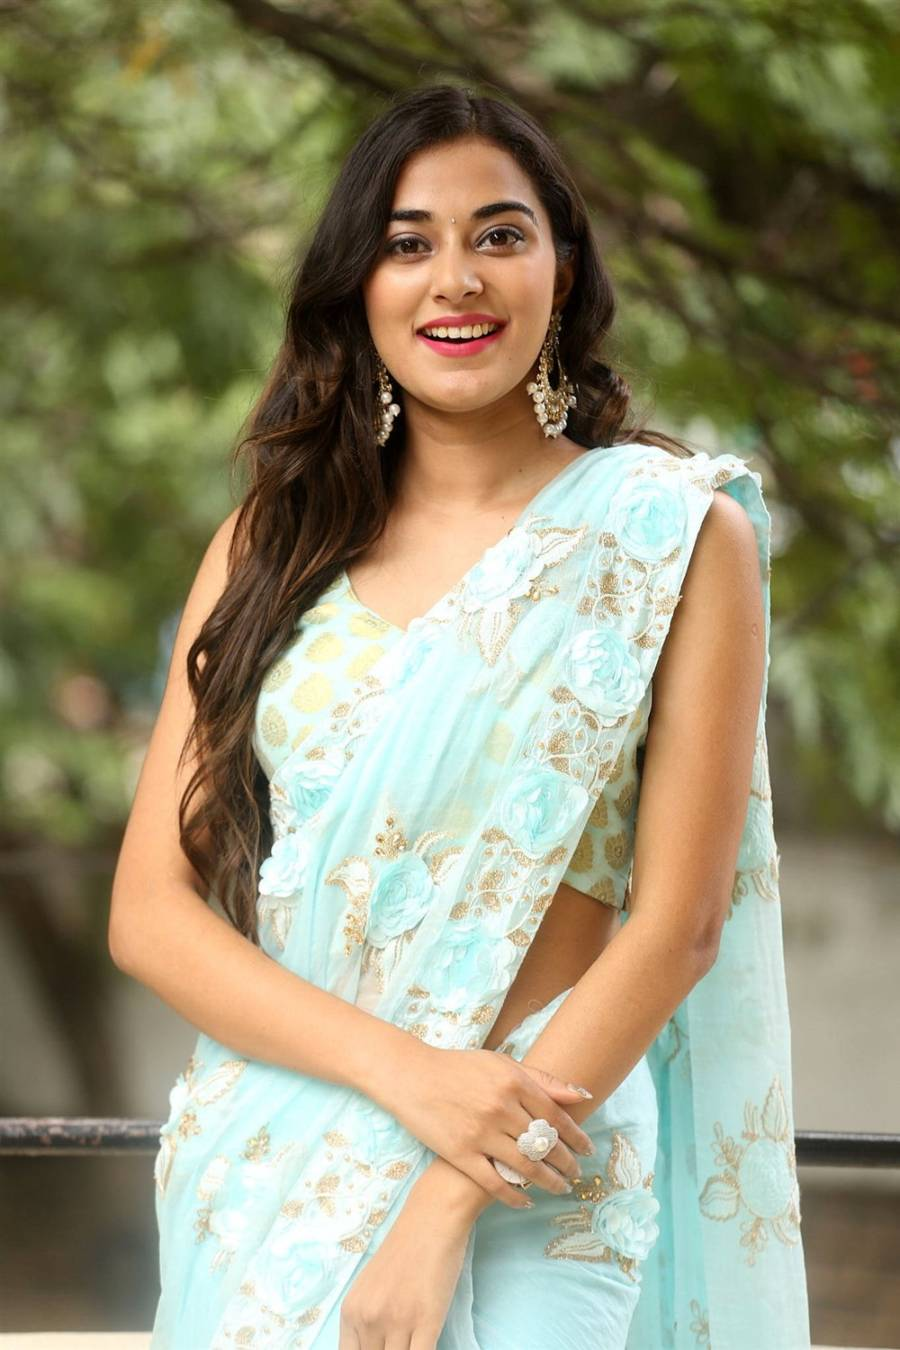 Beautiful Indian Girl Stefy Patel In Transparent Blue Saree